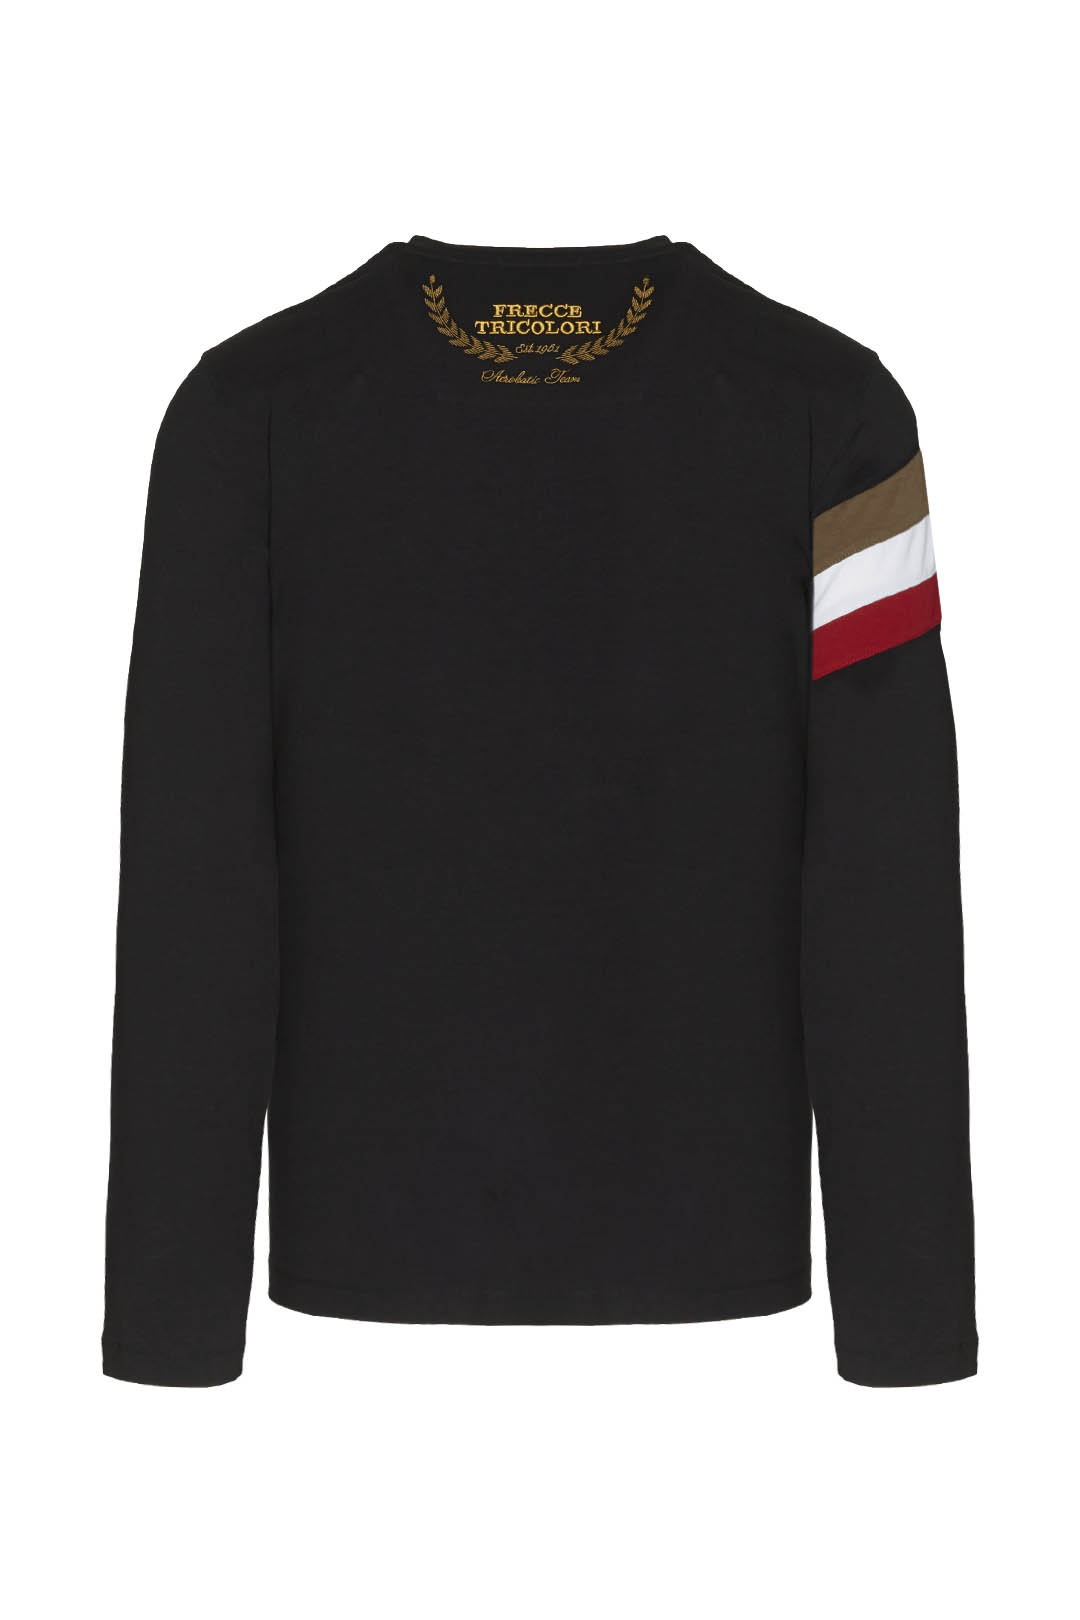 Frecce Tricolori long-sleeved t-shirt    2